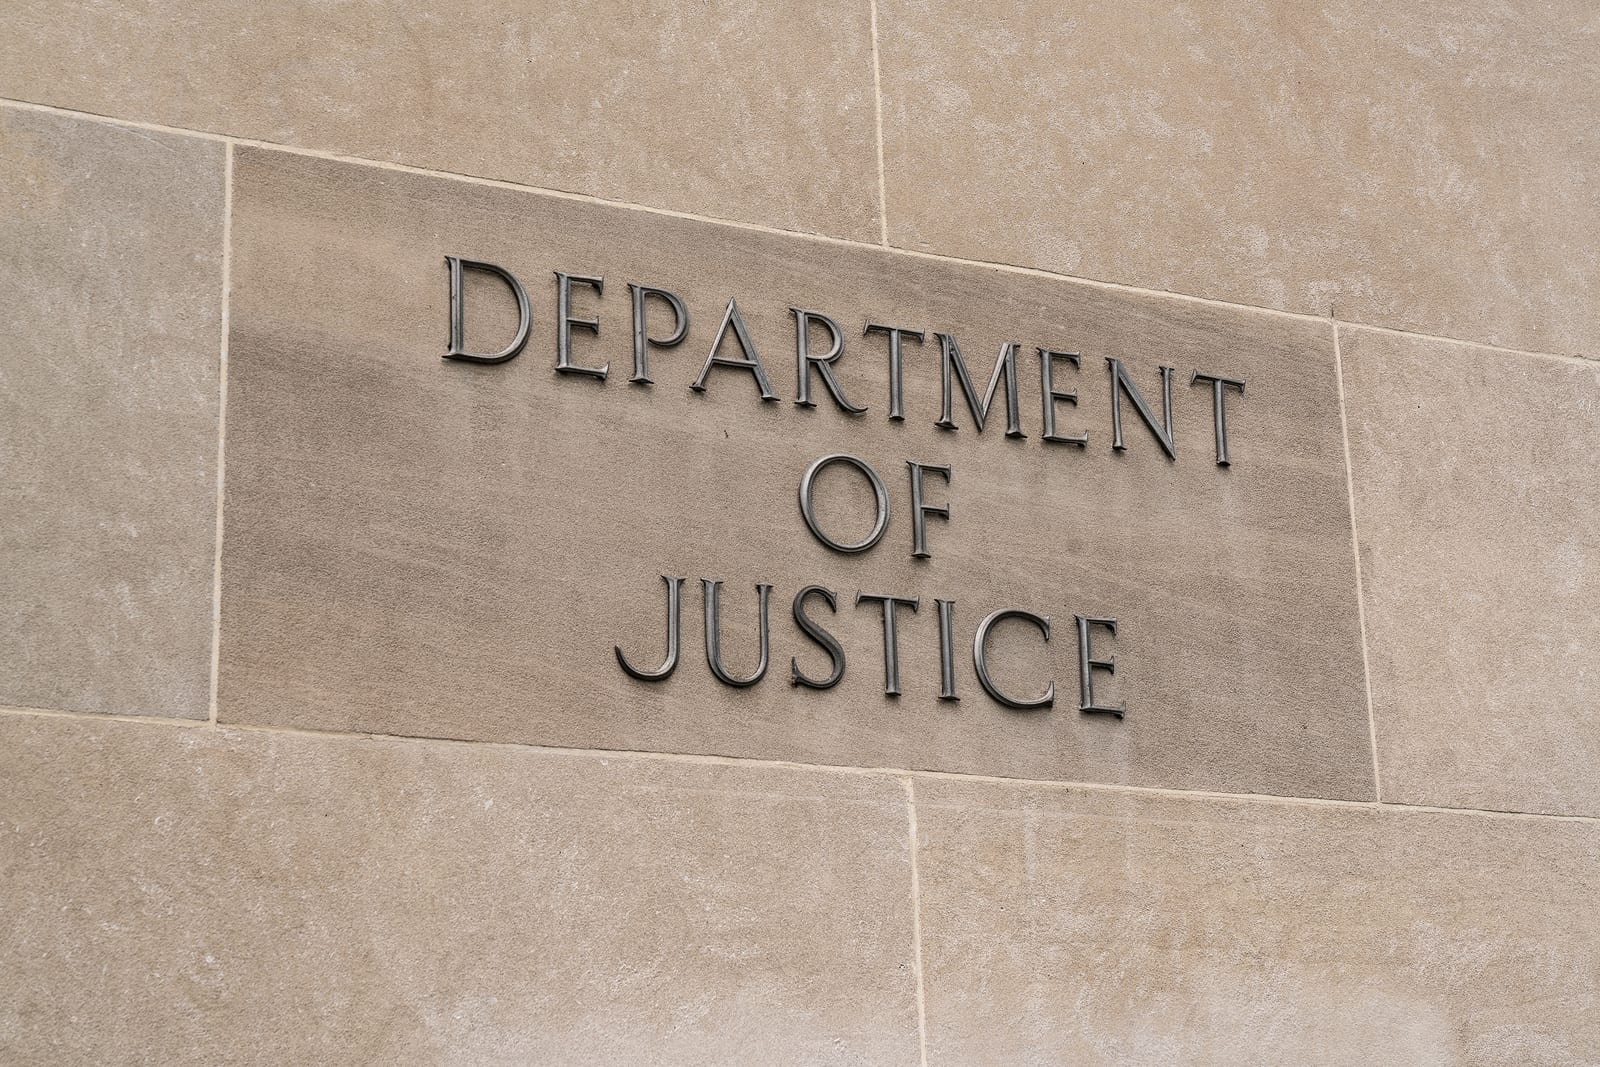 South Dakota News: SIOUX FALLS, DEPARTMENT OF JUSTICE AND DEPARTMENT OF INTERIOR TEAM UP FOR MAJOR EXPANSION OF TRIBAL ACCESS TO NATIONAL CRIME INFORMATION DATABASES